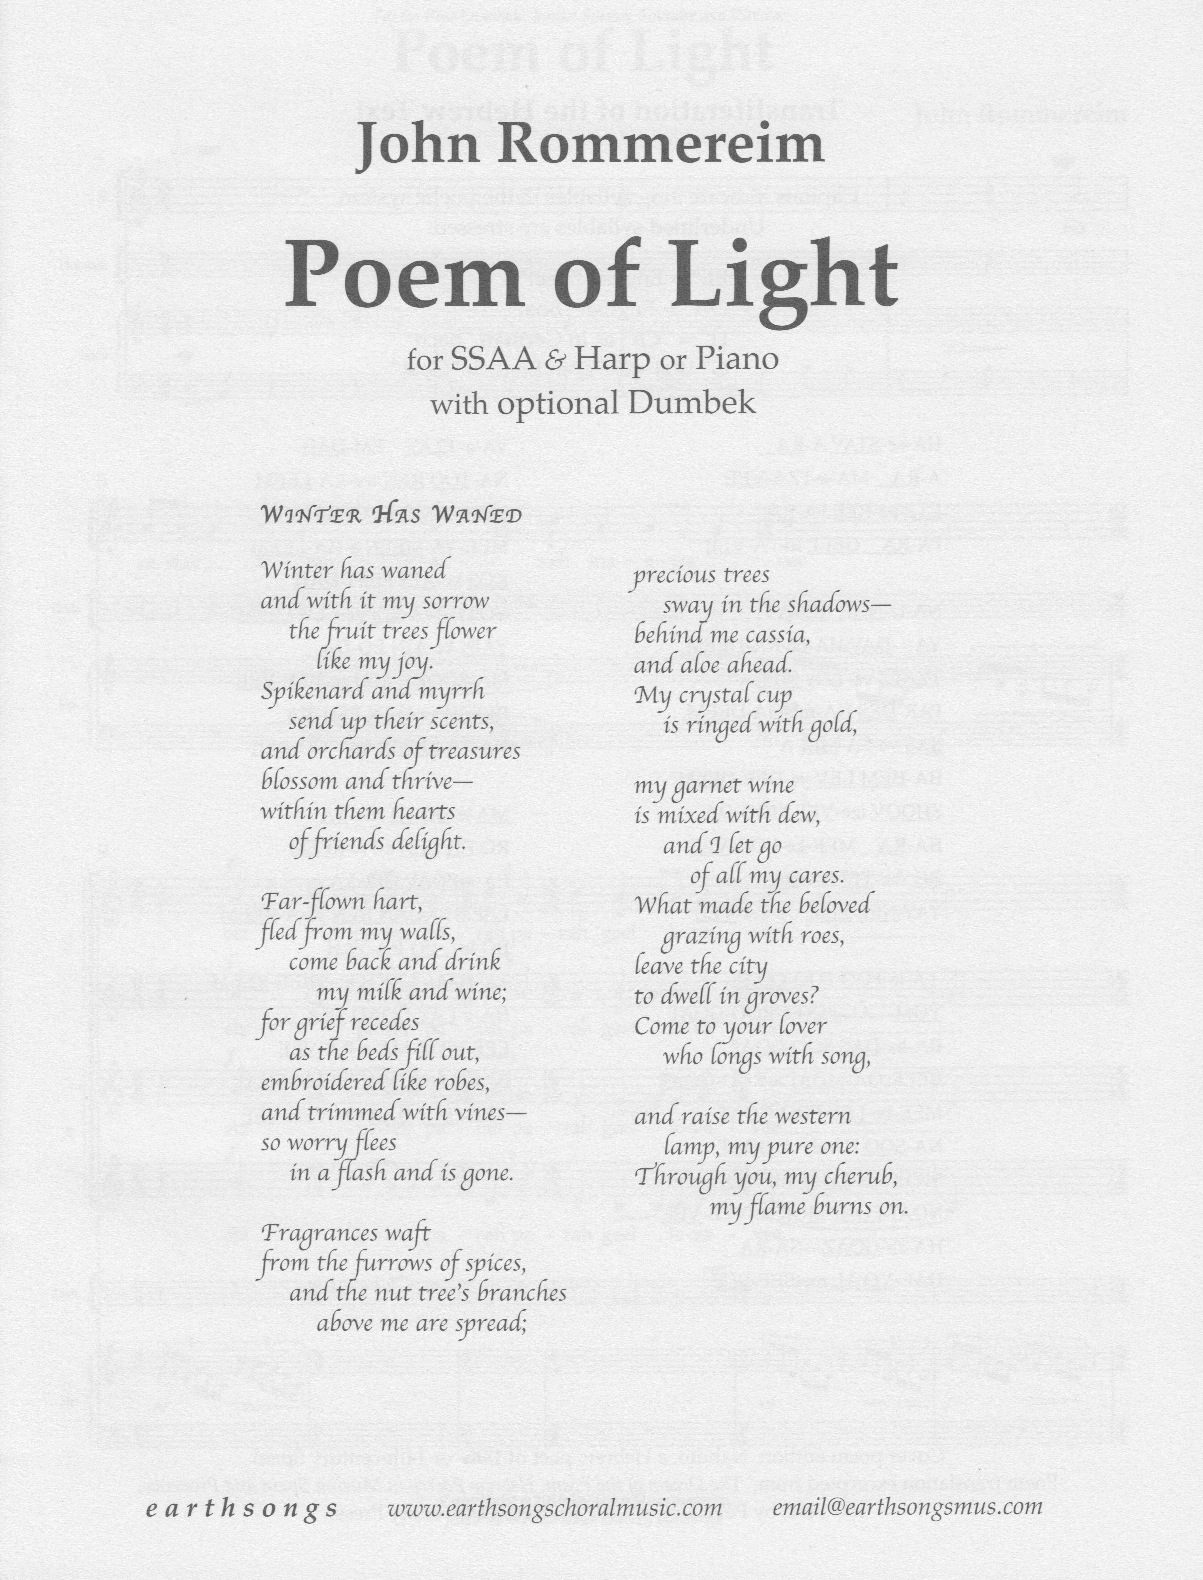 poem of light (ssaa)